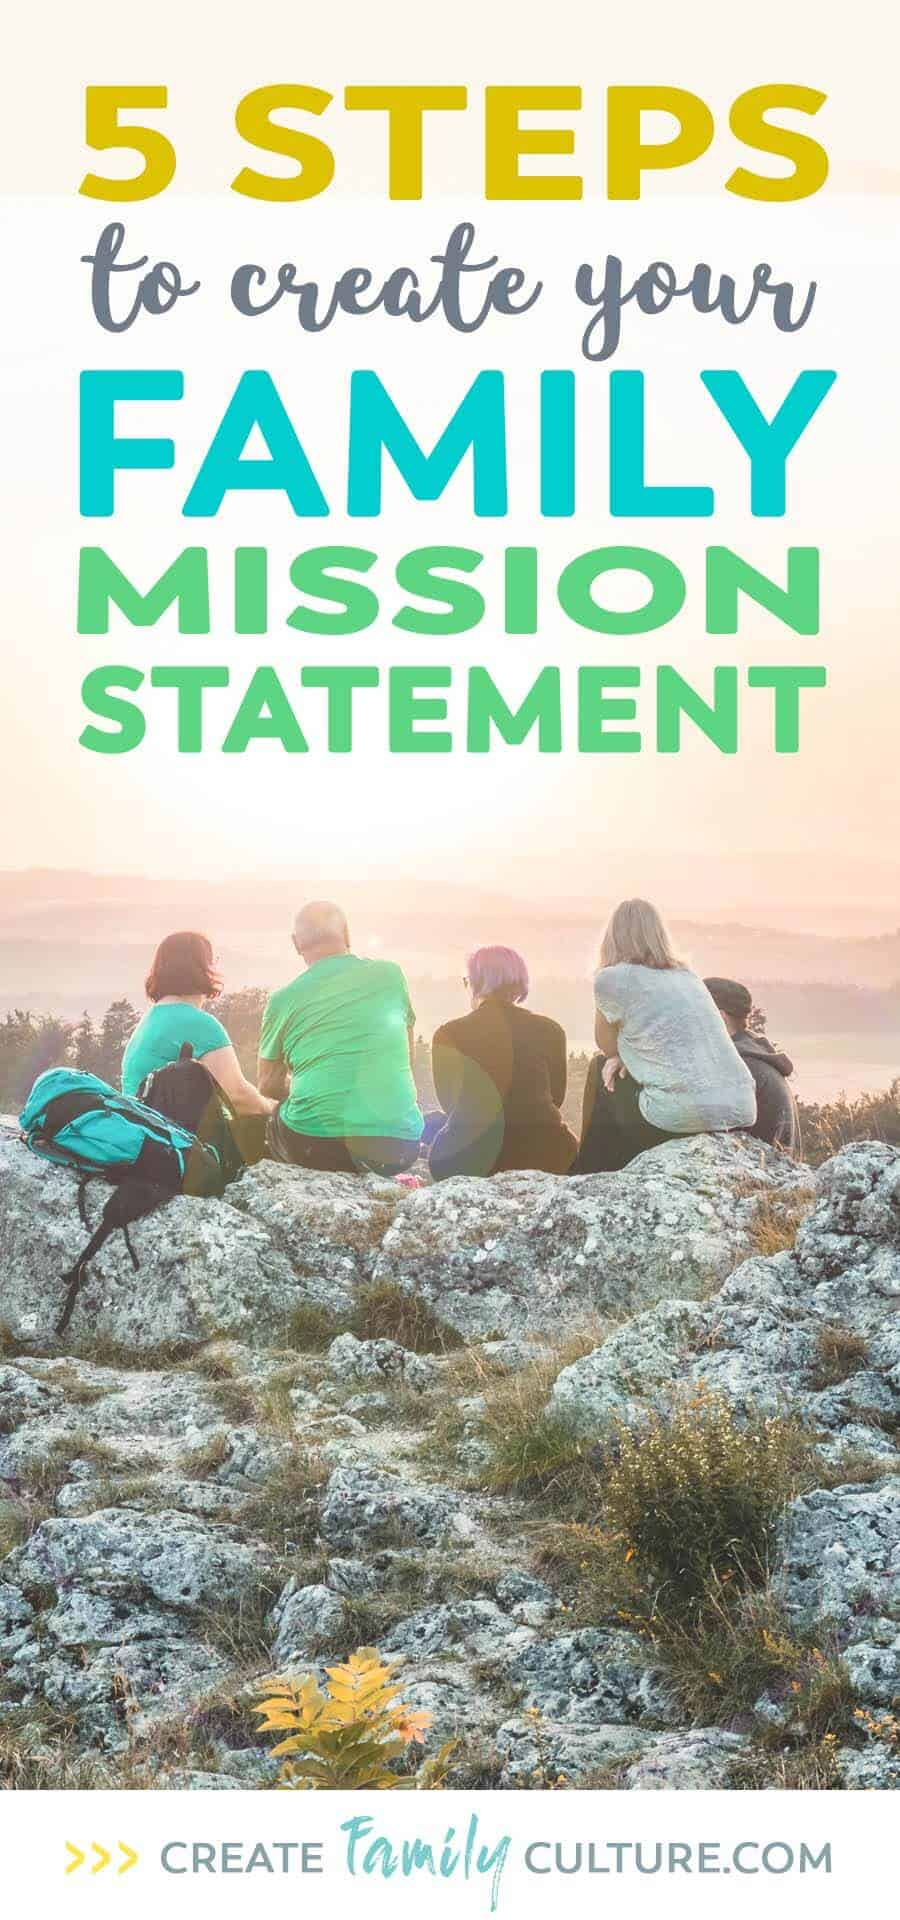 How to Write a Family Mission Statement. 5 steps to create a family mission statement that's perfect for your family. Intentional parenting | Christian parenting | Parenting tips and resources